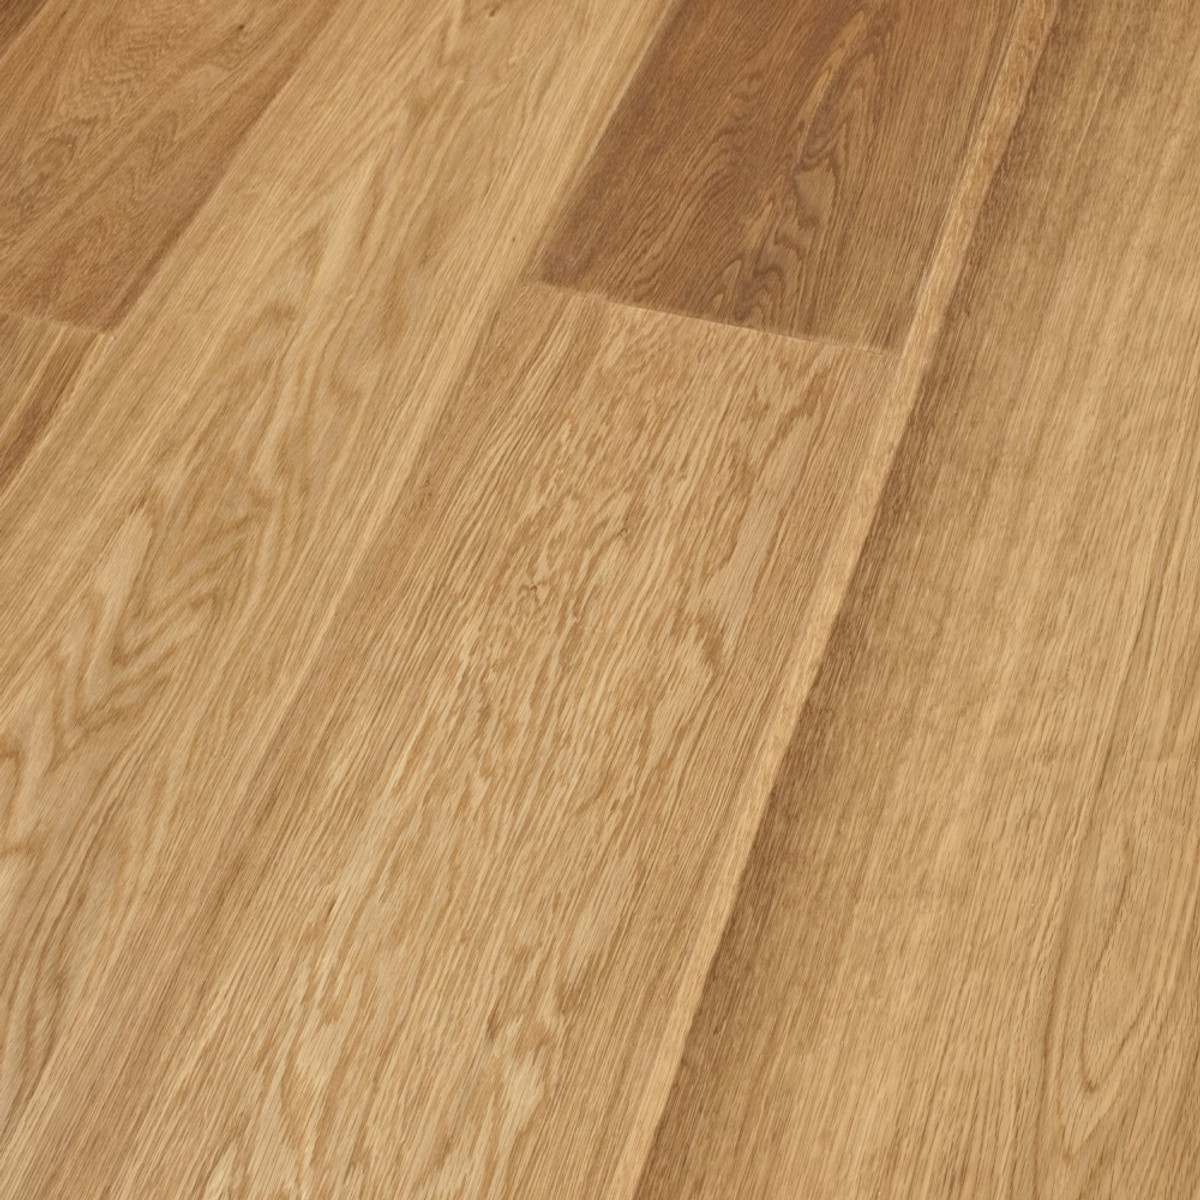 Tuscany Vermont_Smoked_Brushed_&_Lacquered_14¦3_X240mm Engineered Wood Flooring order instore or online today @ www.tuscanytiles.co.uk